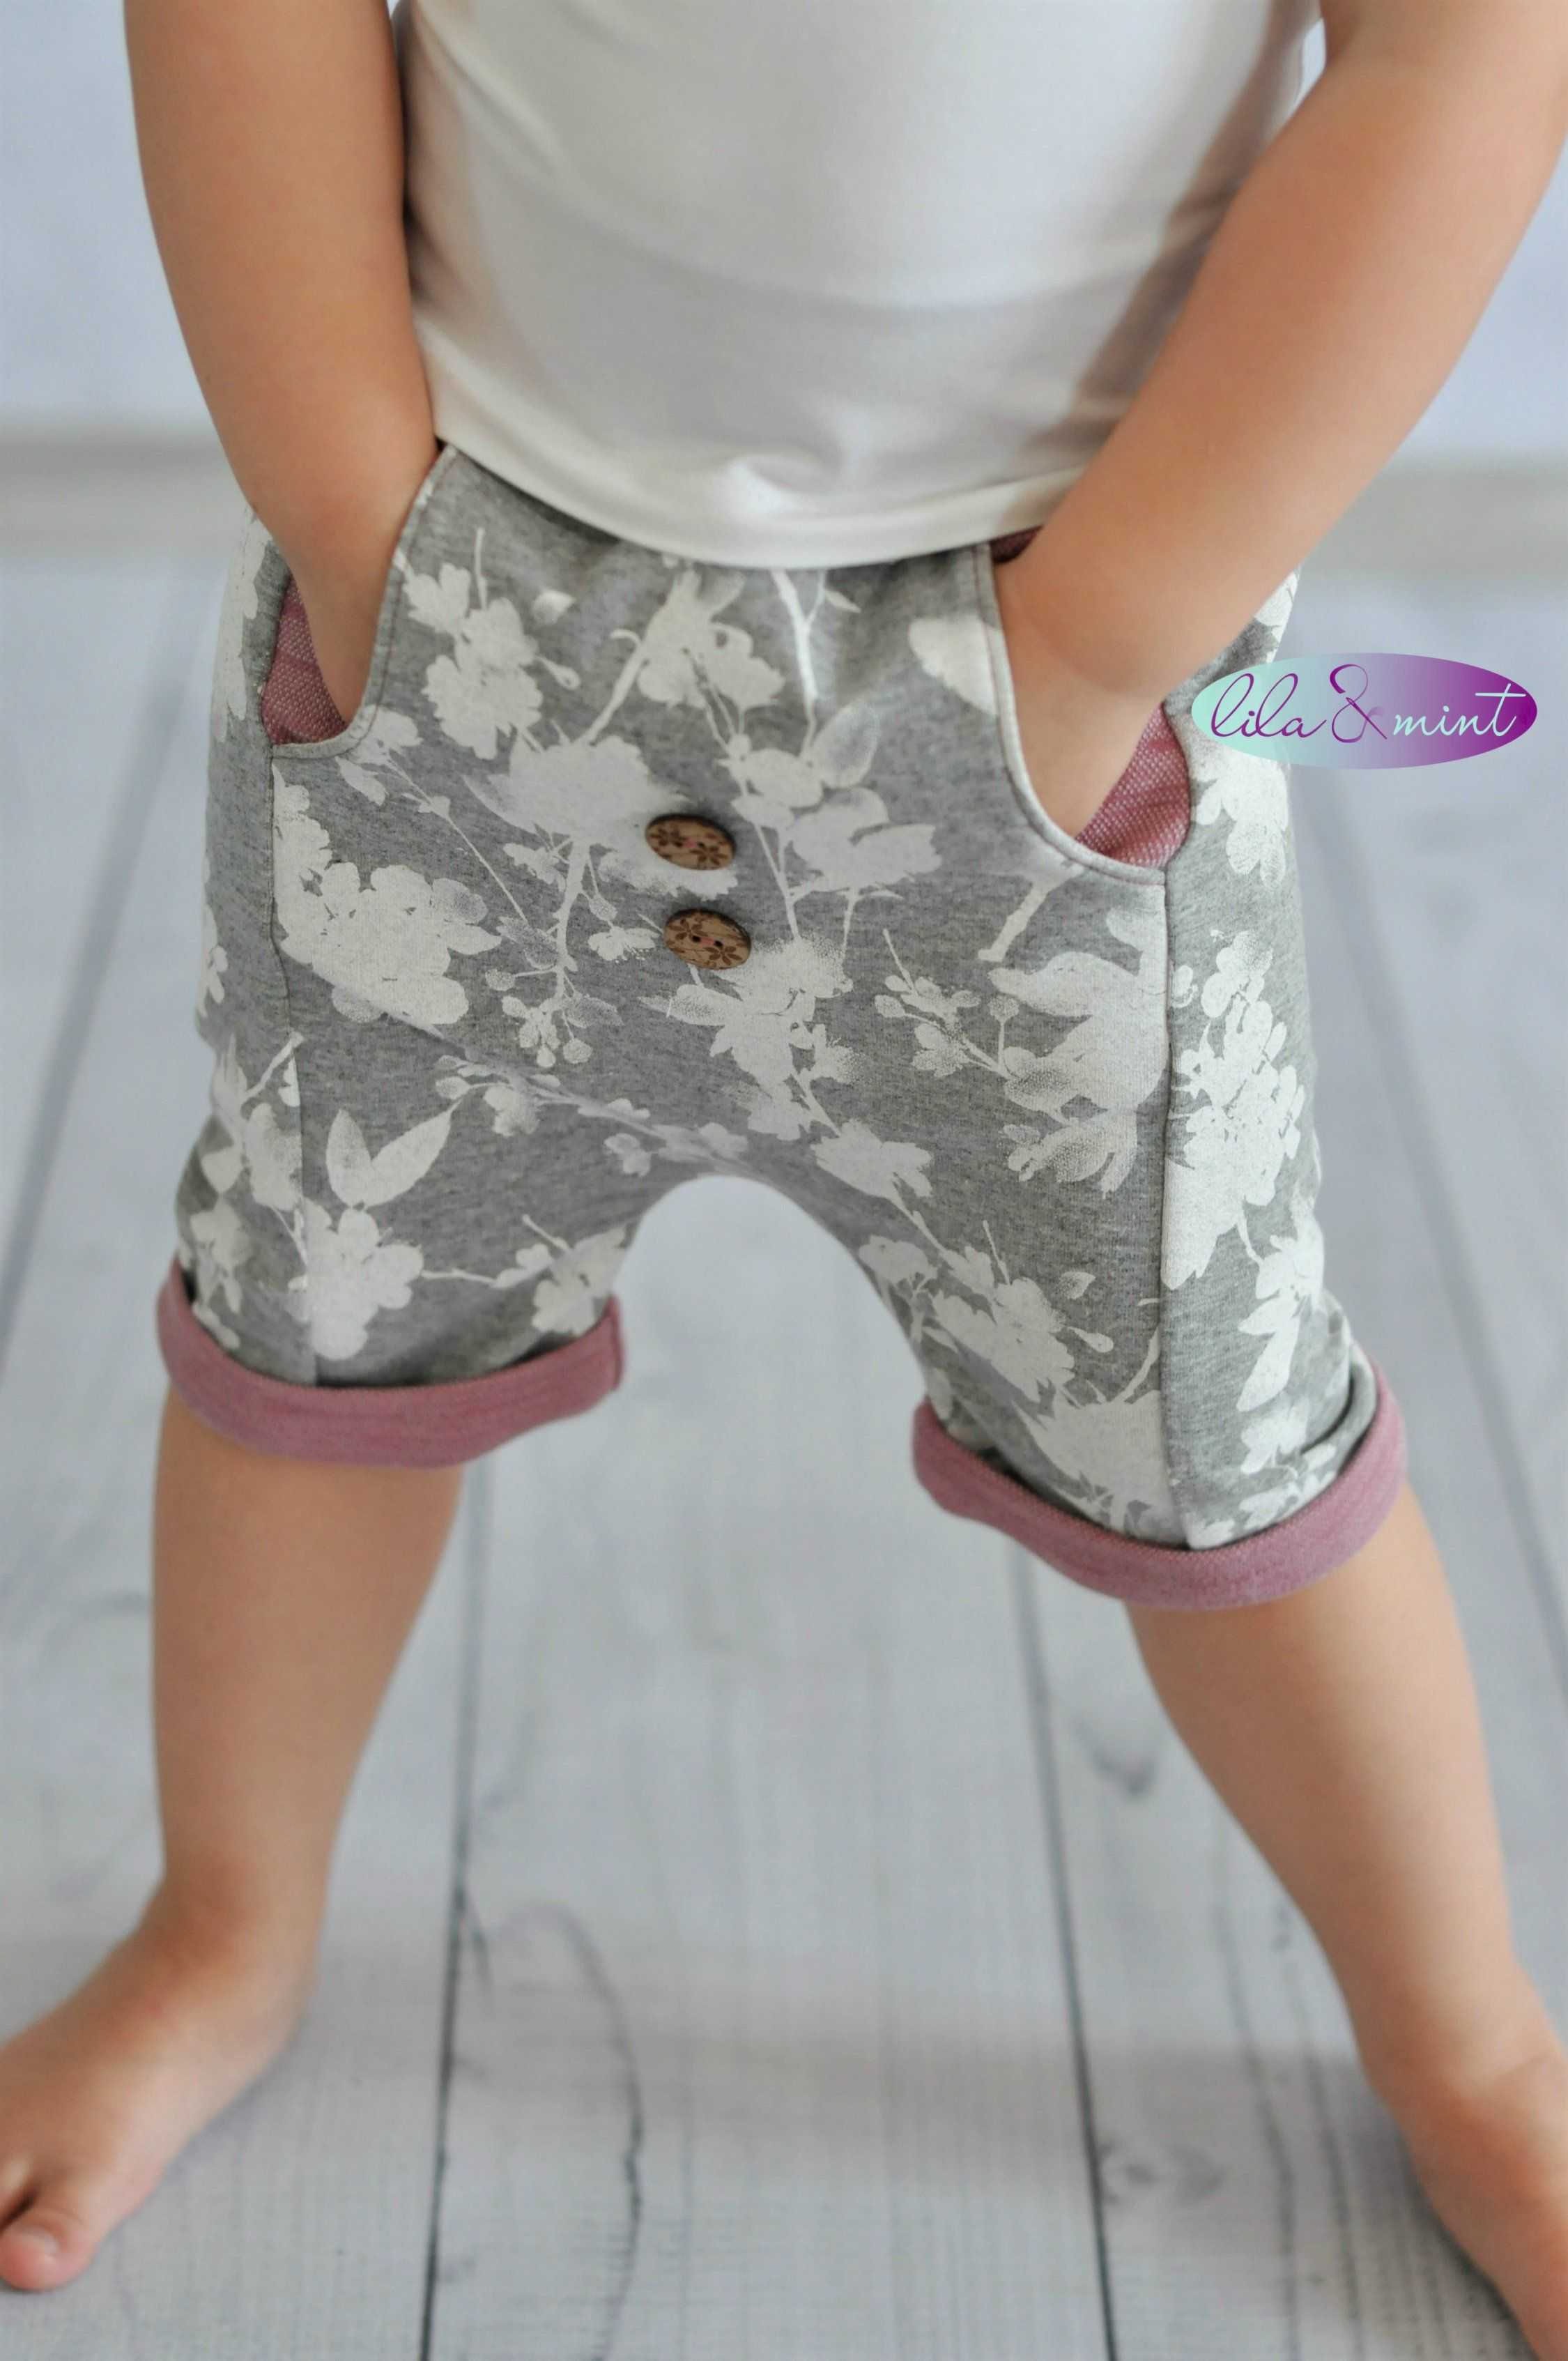 Crazyshorts #toddlershorts